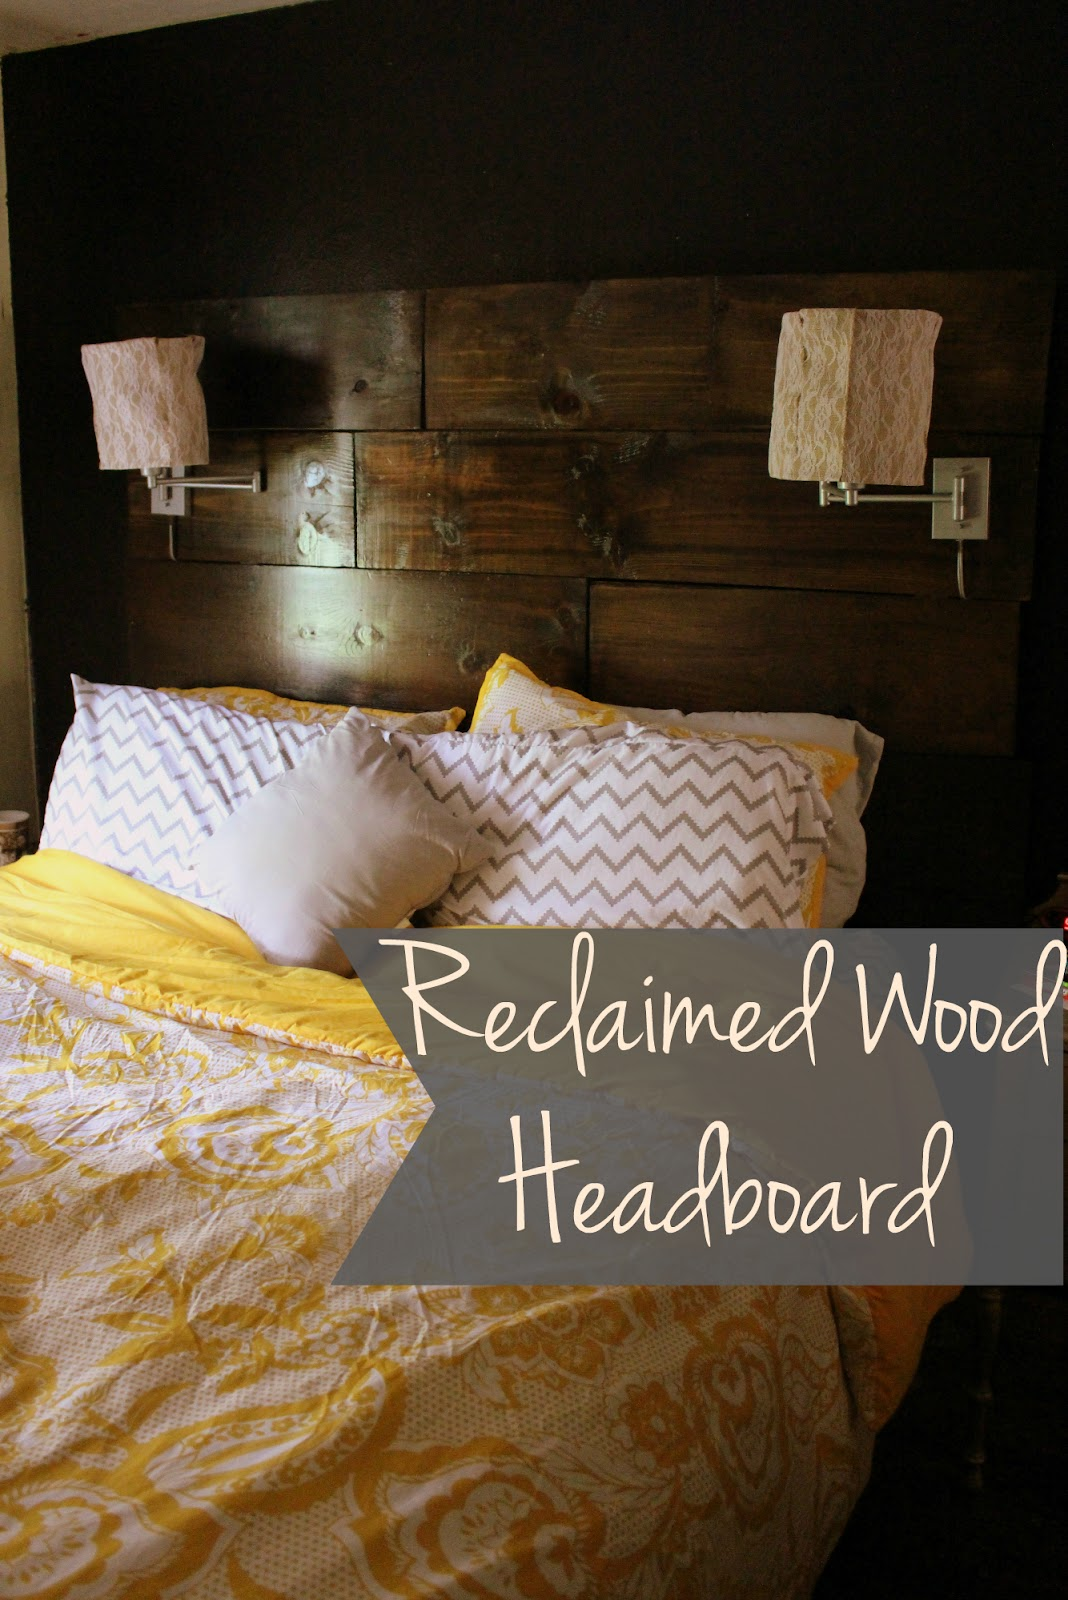 I Finally Got My Act Together And Made A Headboard For Headboardless Bed